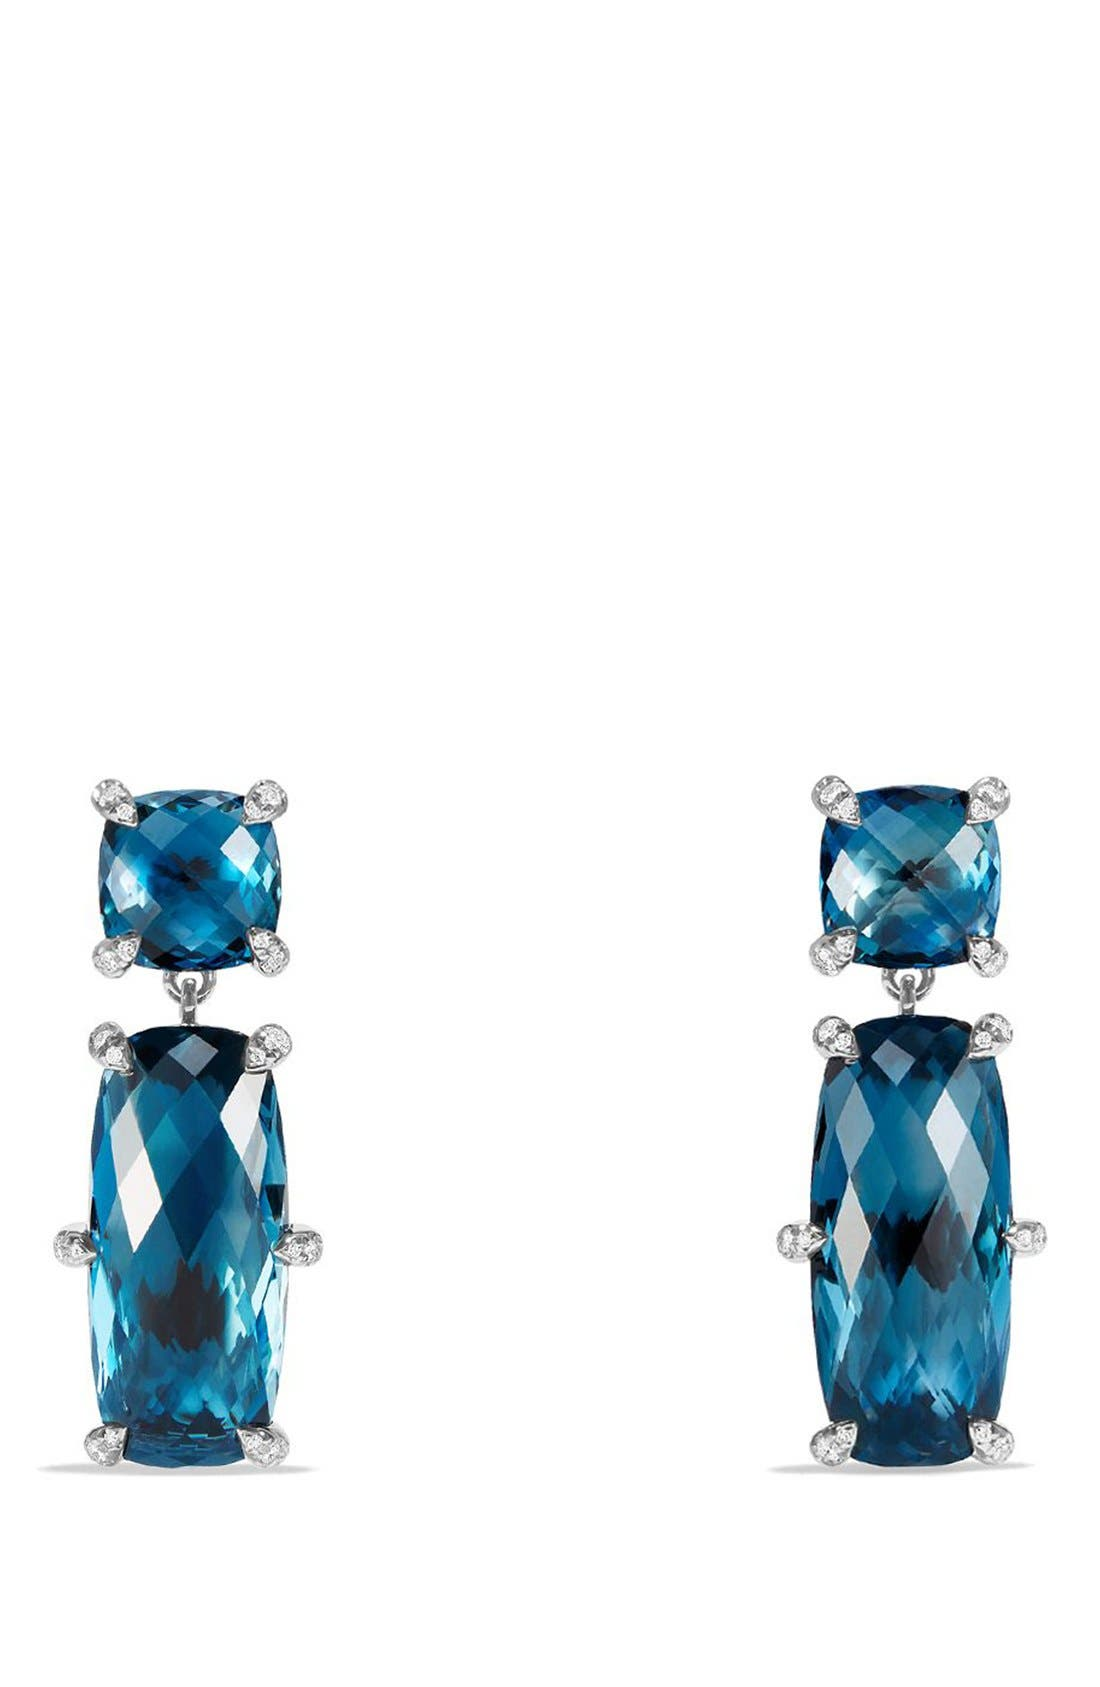 DAVID YURMAN 'Châtelaine' Double Drop Earrings